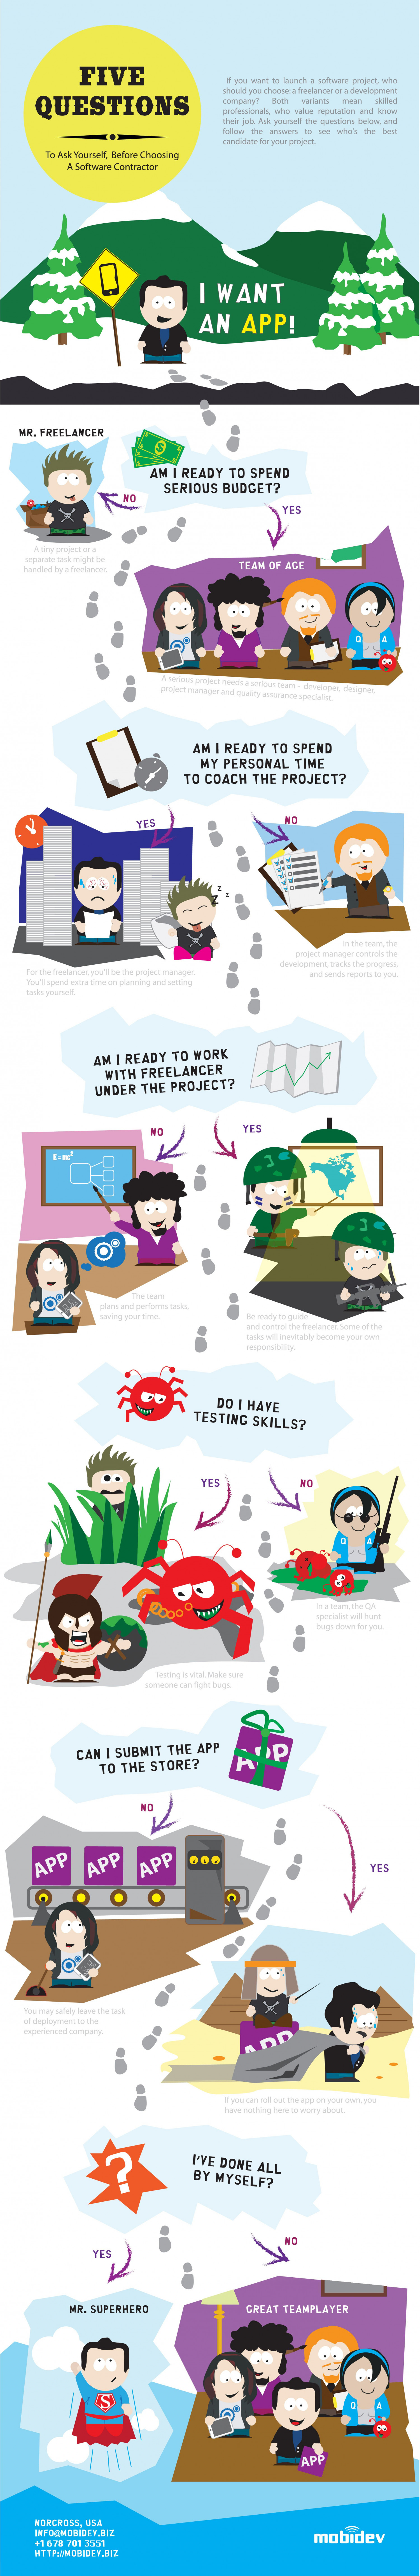 5 Questions About Choosing A Software Developer Infographic